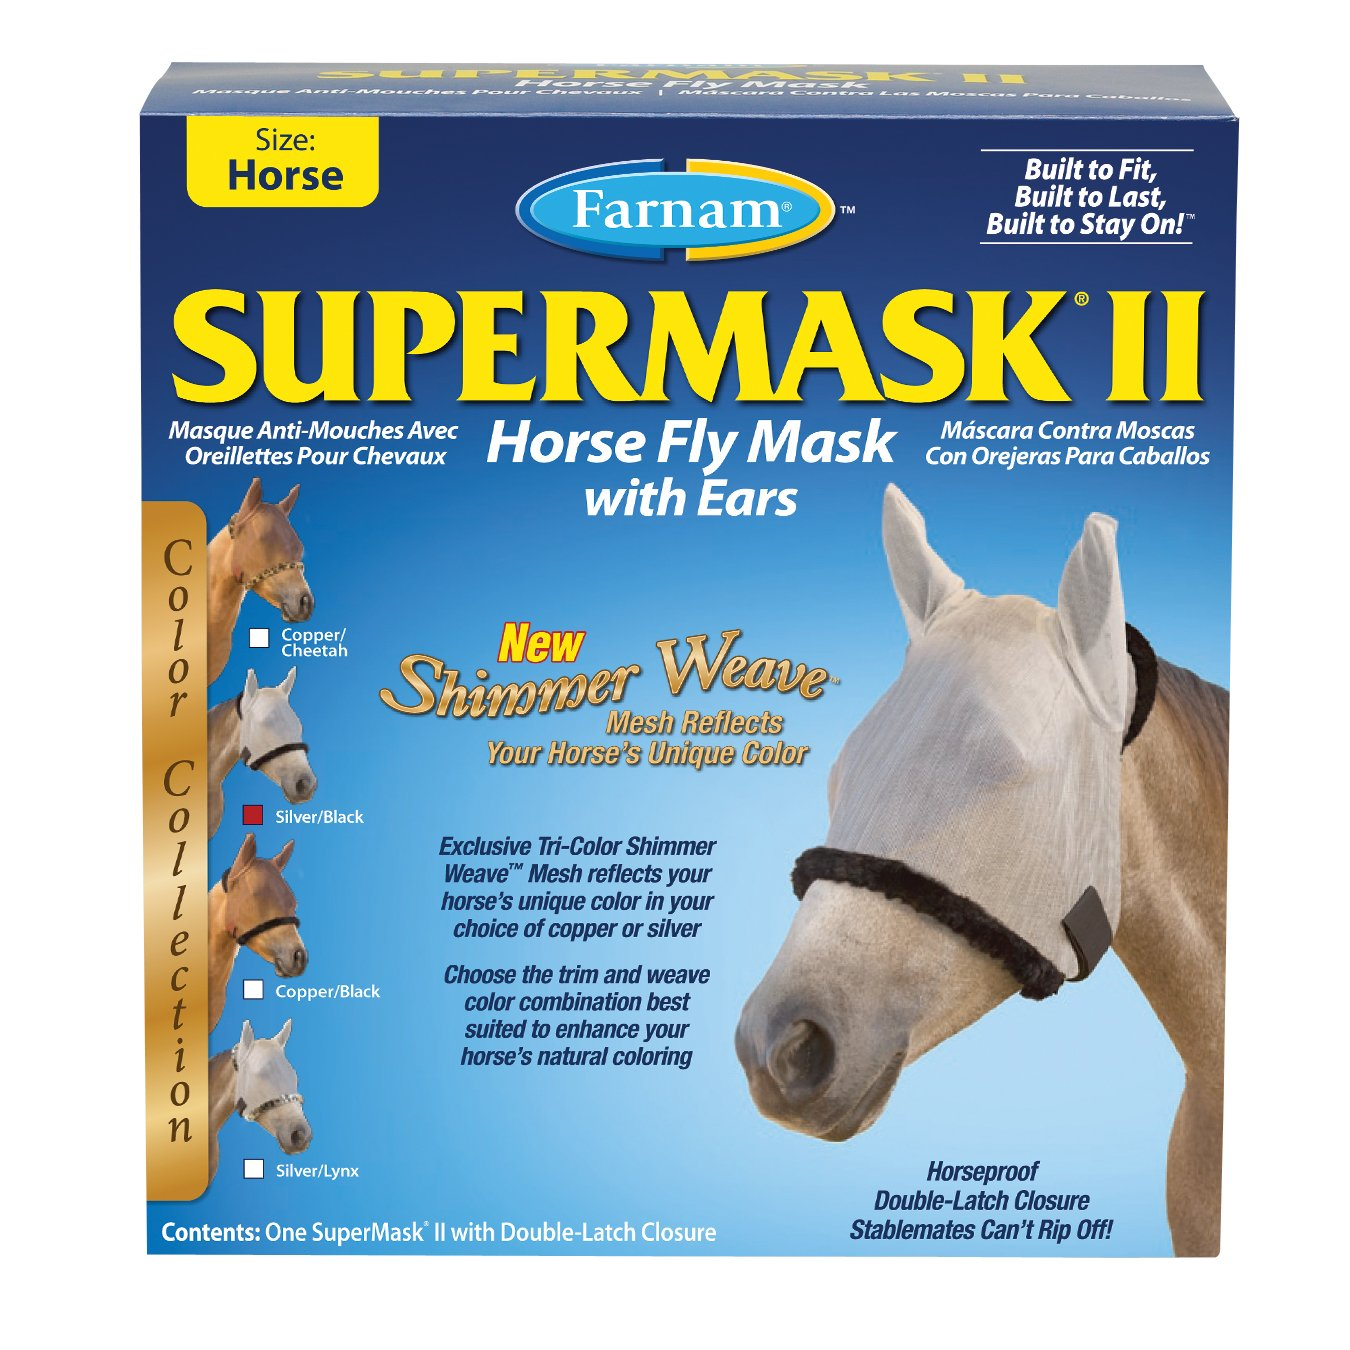 Farnam SuperMask II Shimmer Weave Horse Fly Mask with Ears, Horse size, Silver Mesh with Black Trim by Farnam (Image #1)